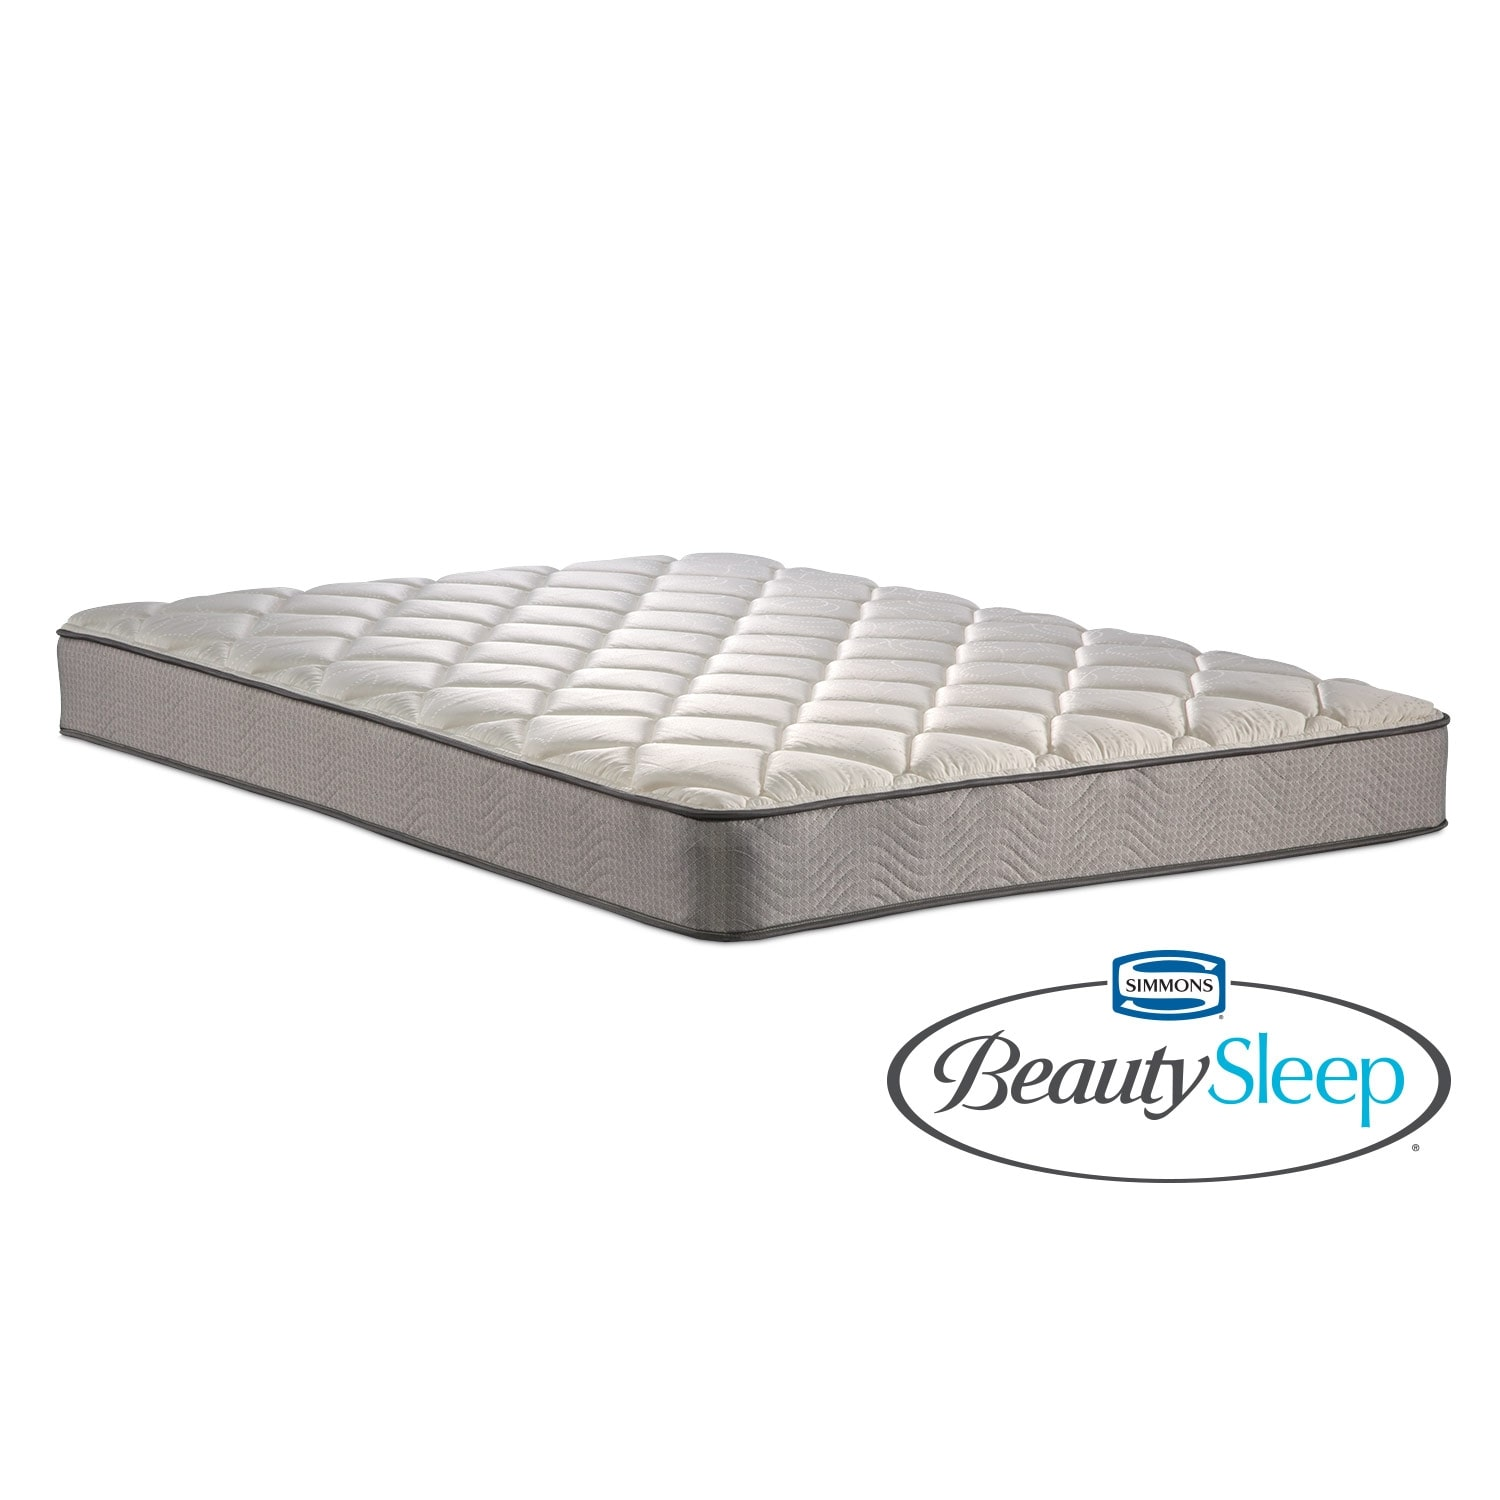 Mattresses and Bedding - Gates Way Full Mattress